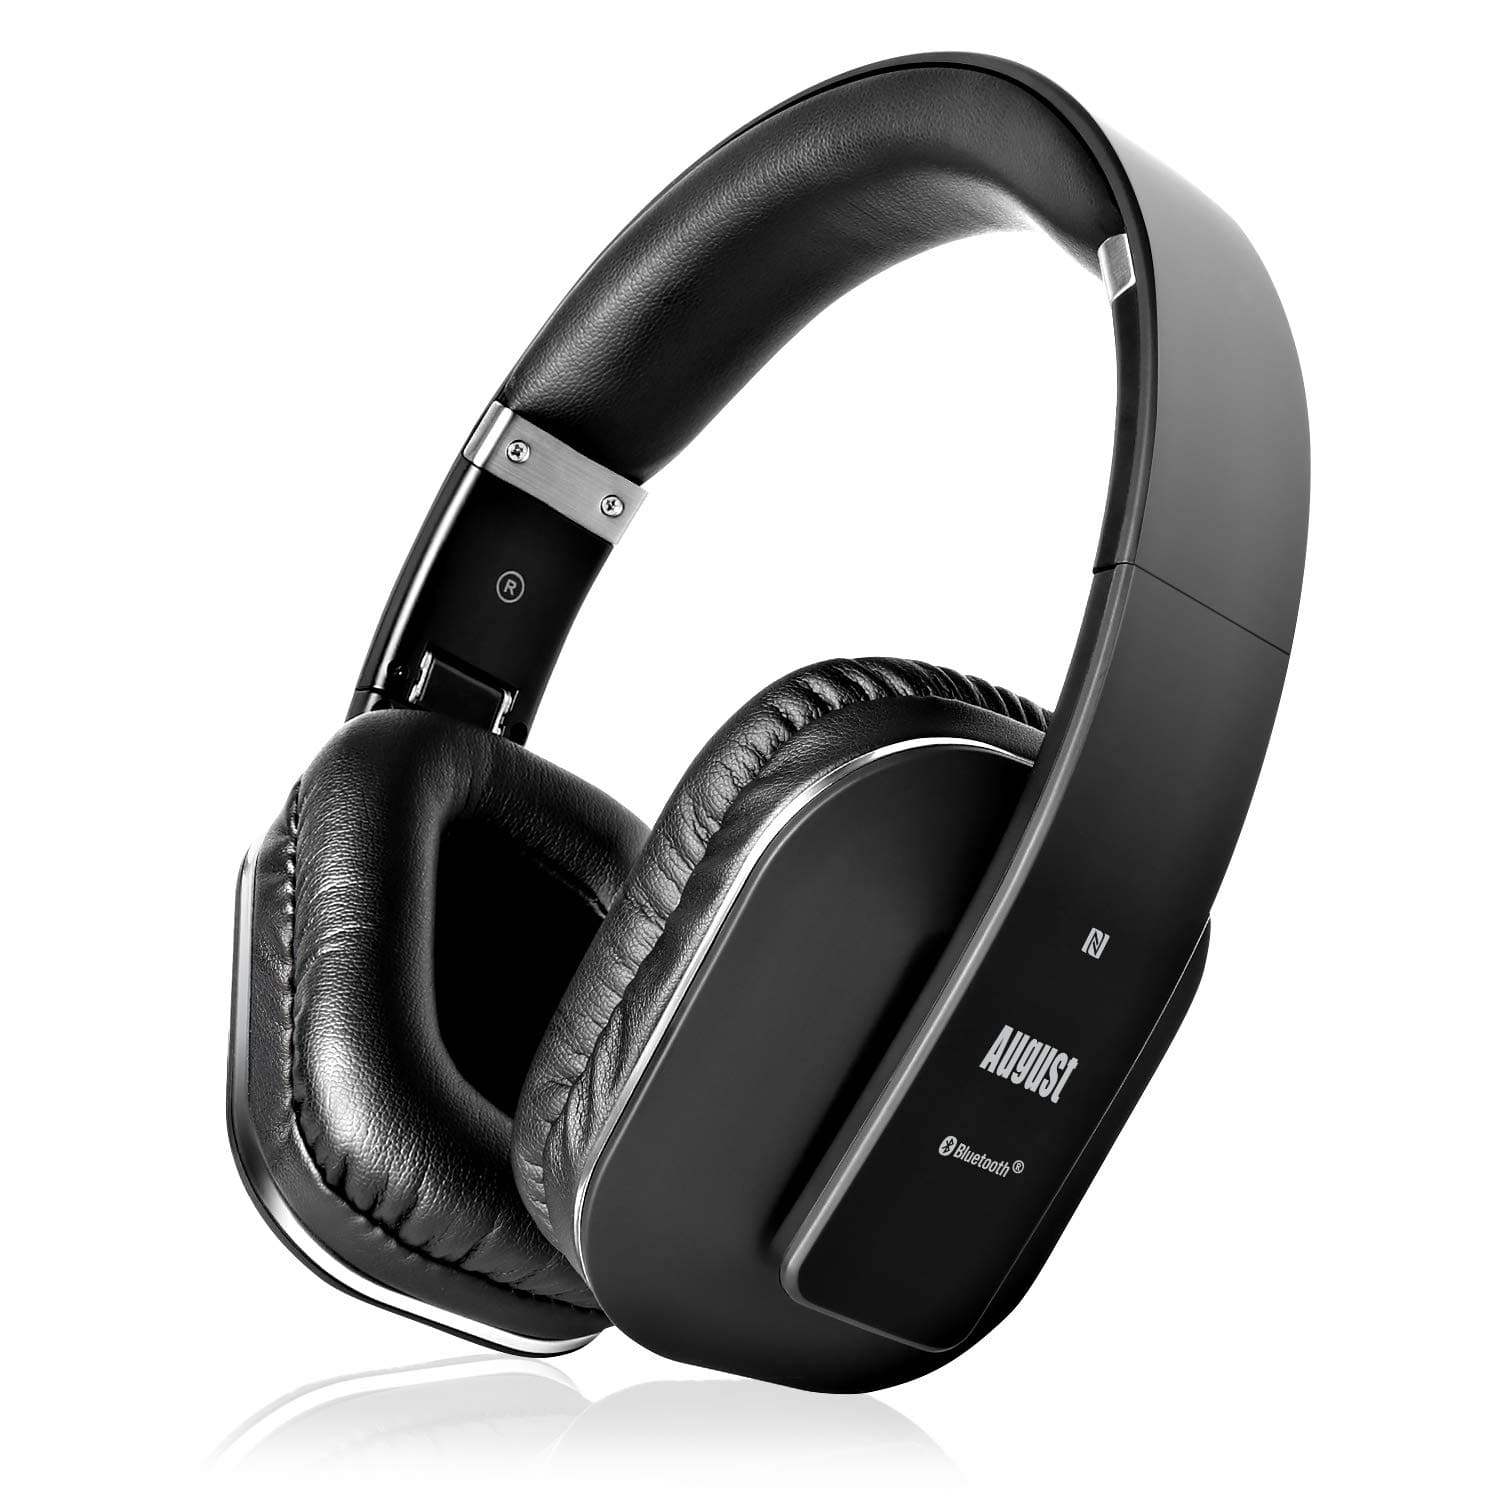 August EP650 Over Ear Bluetooth Wireless Headphones - $32.87-$34.27 AC